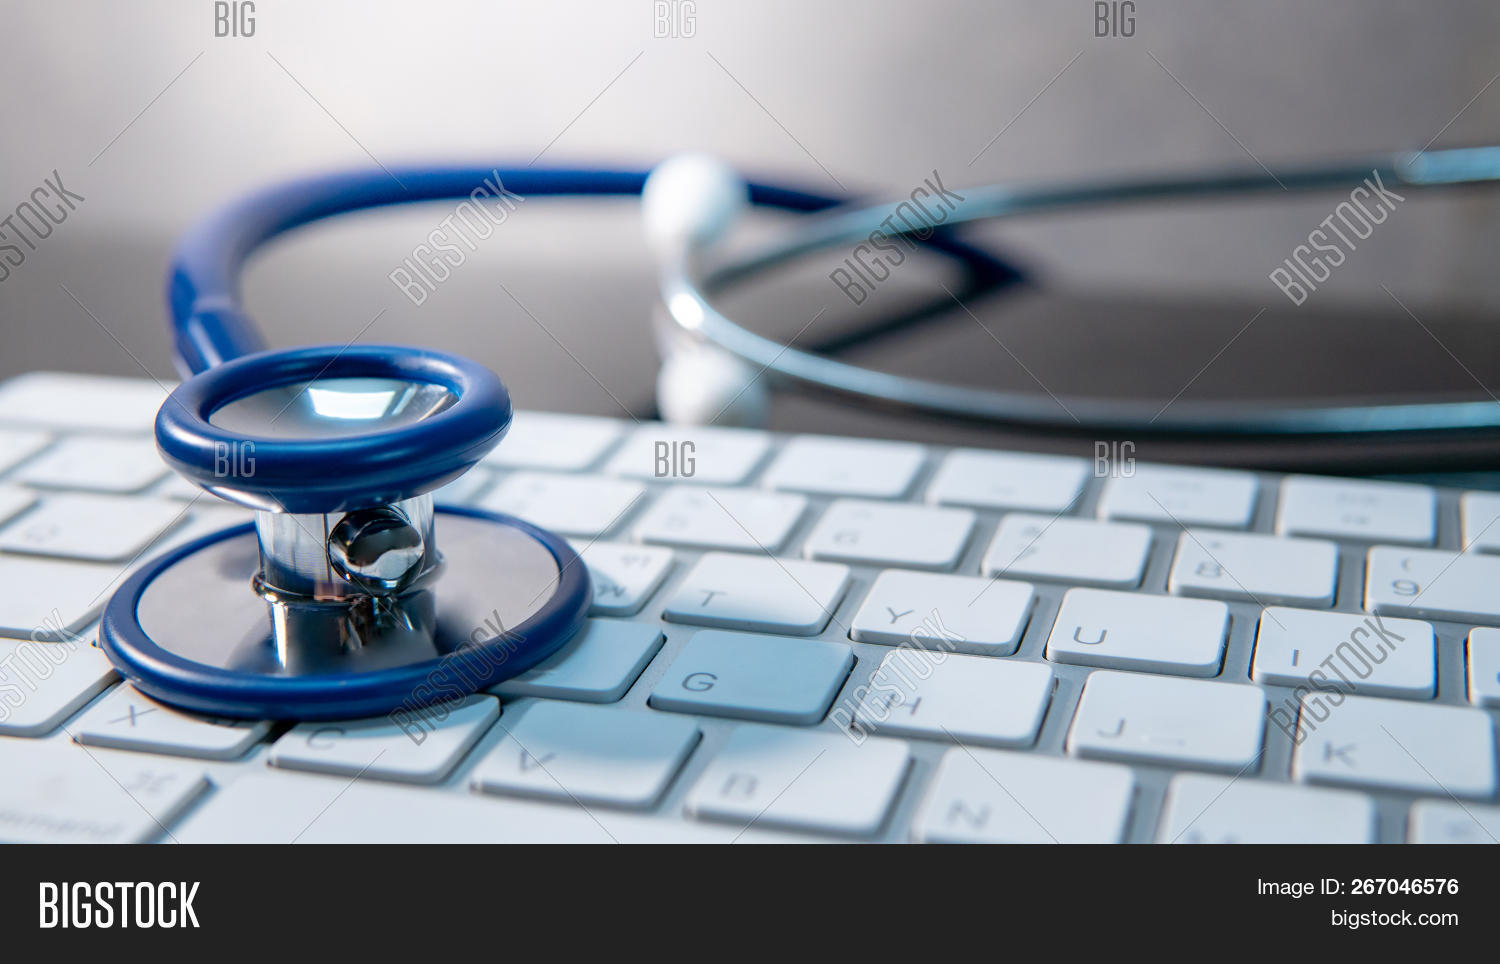 Medical Science Technology Concept. Blue Stethoscope On White Modern Keyboard On Doctor Desk. Health